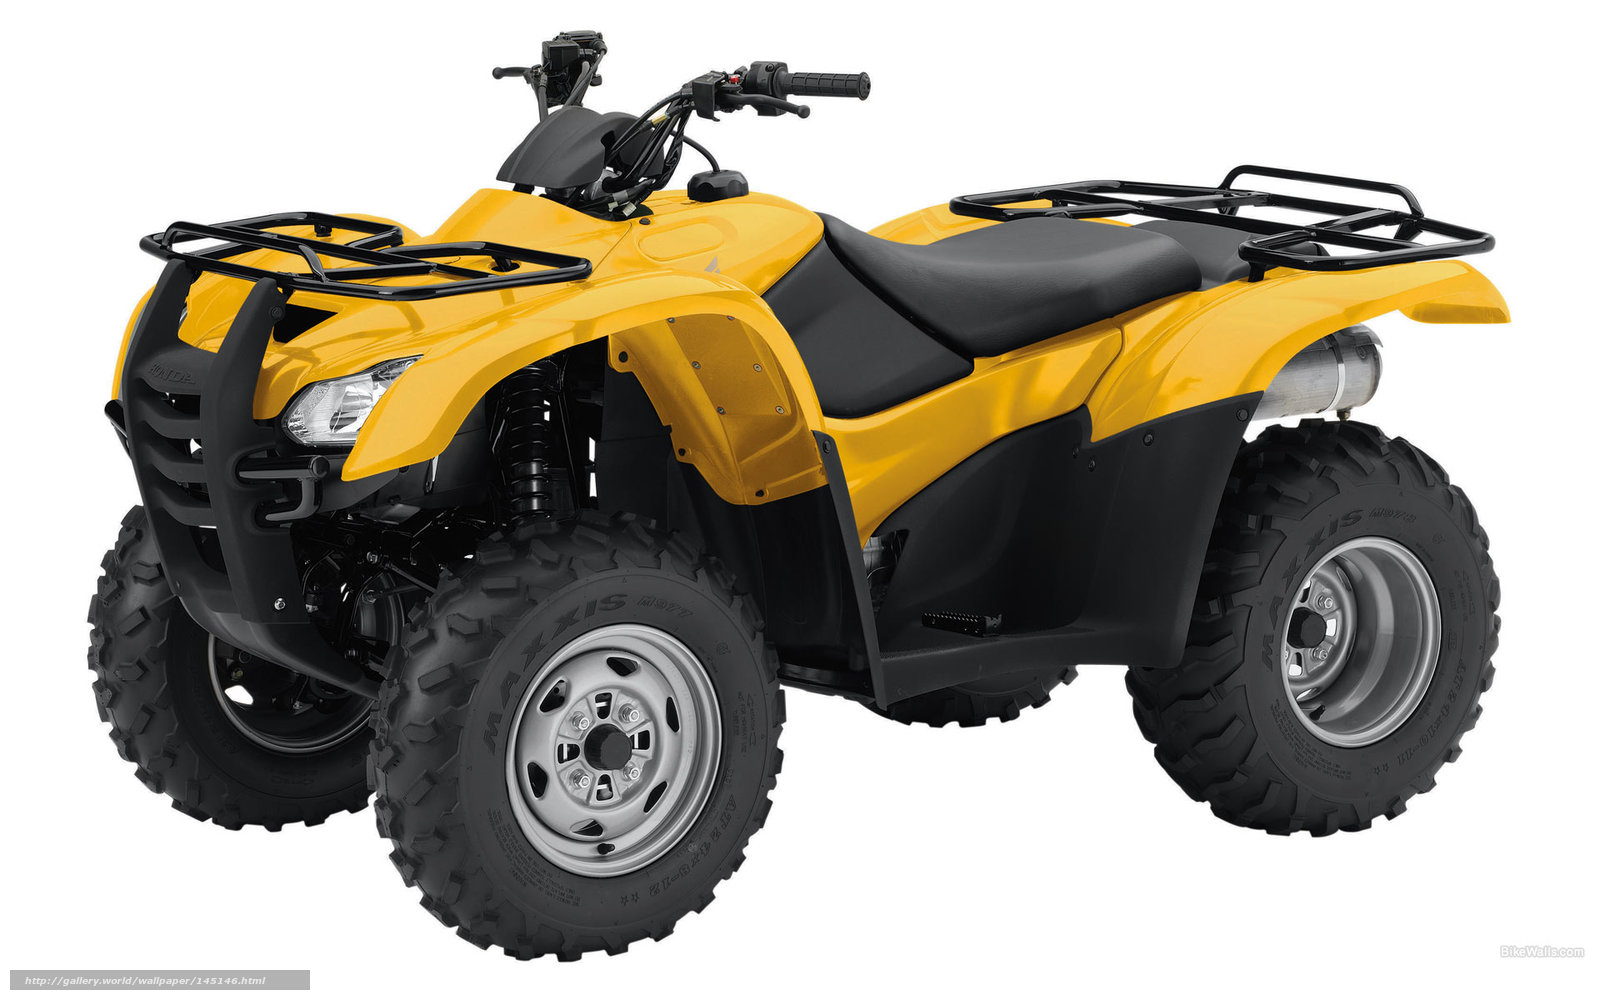 Download wallpaper Honda ATV FourTrax Rancher 2008 FourTrax Rancher 1600x1000